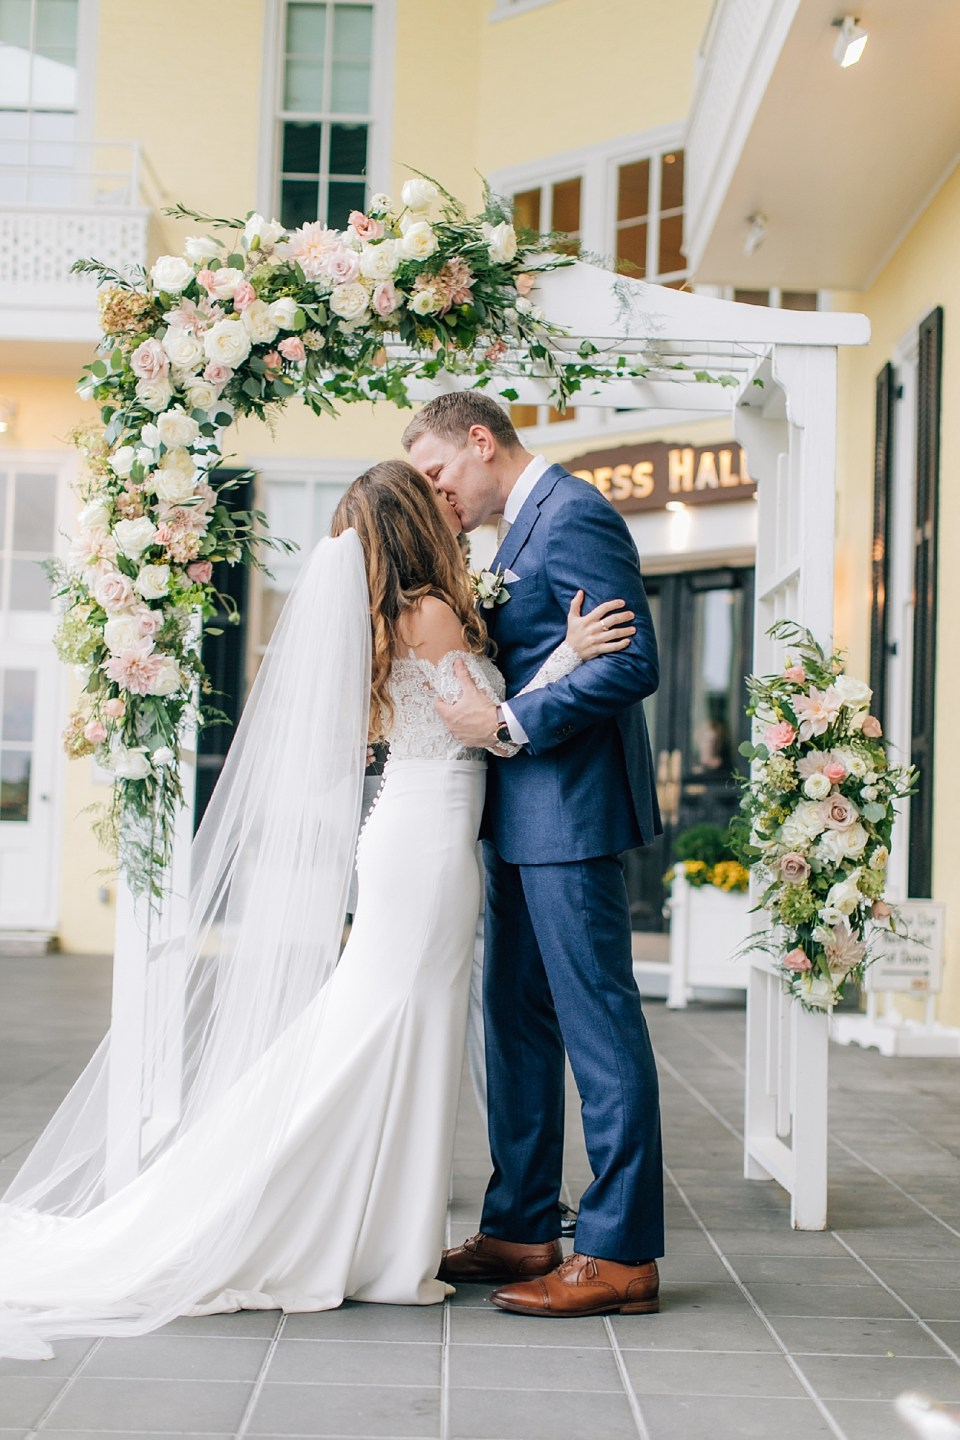 Intimate and Joyful Wedding Photography in Cape May NJ by Magdalena Studios 0037 4